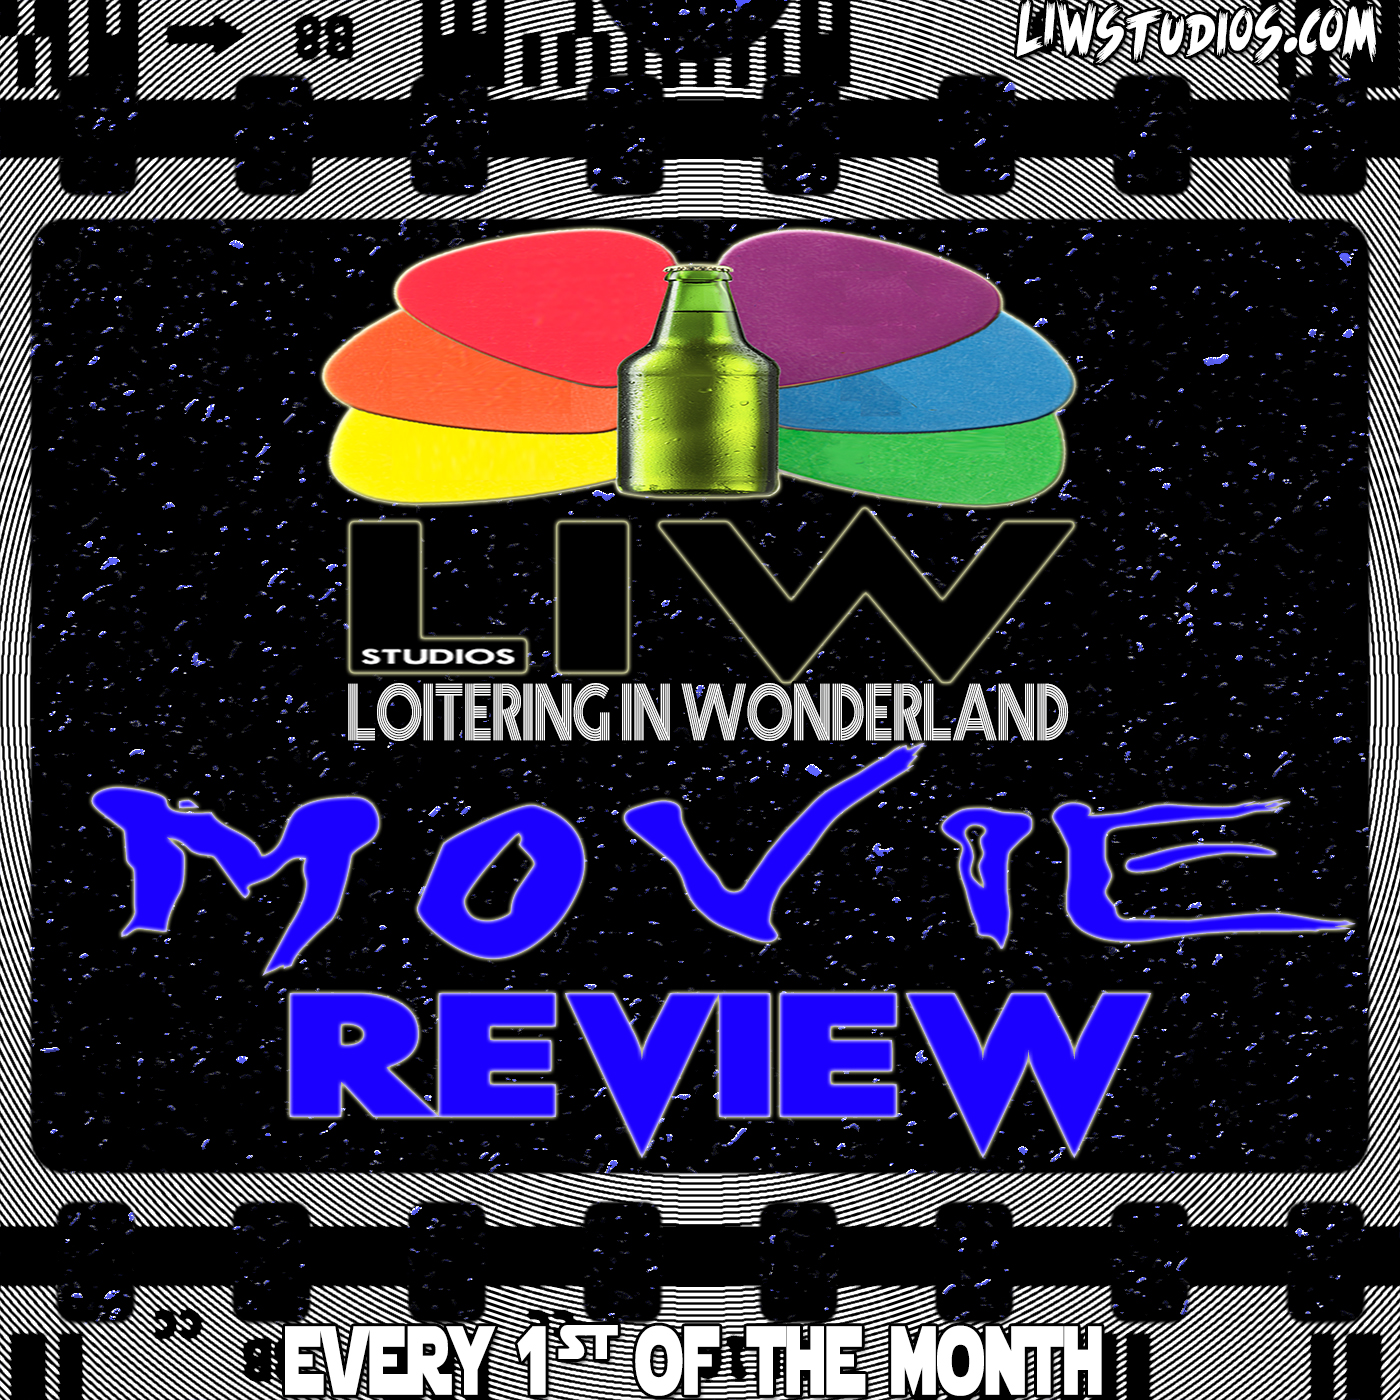 LIW Movie Review - Loitering In Wonderland